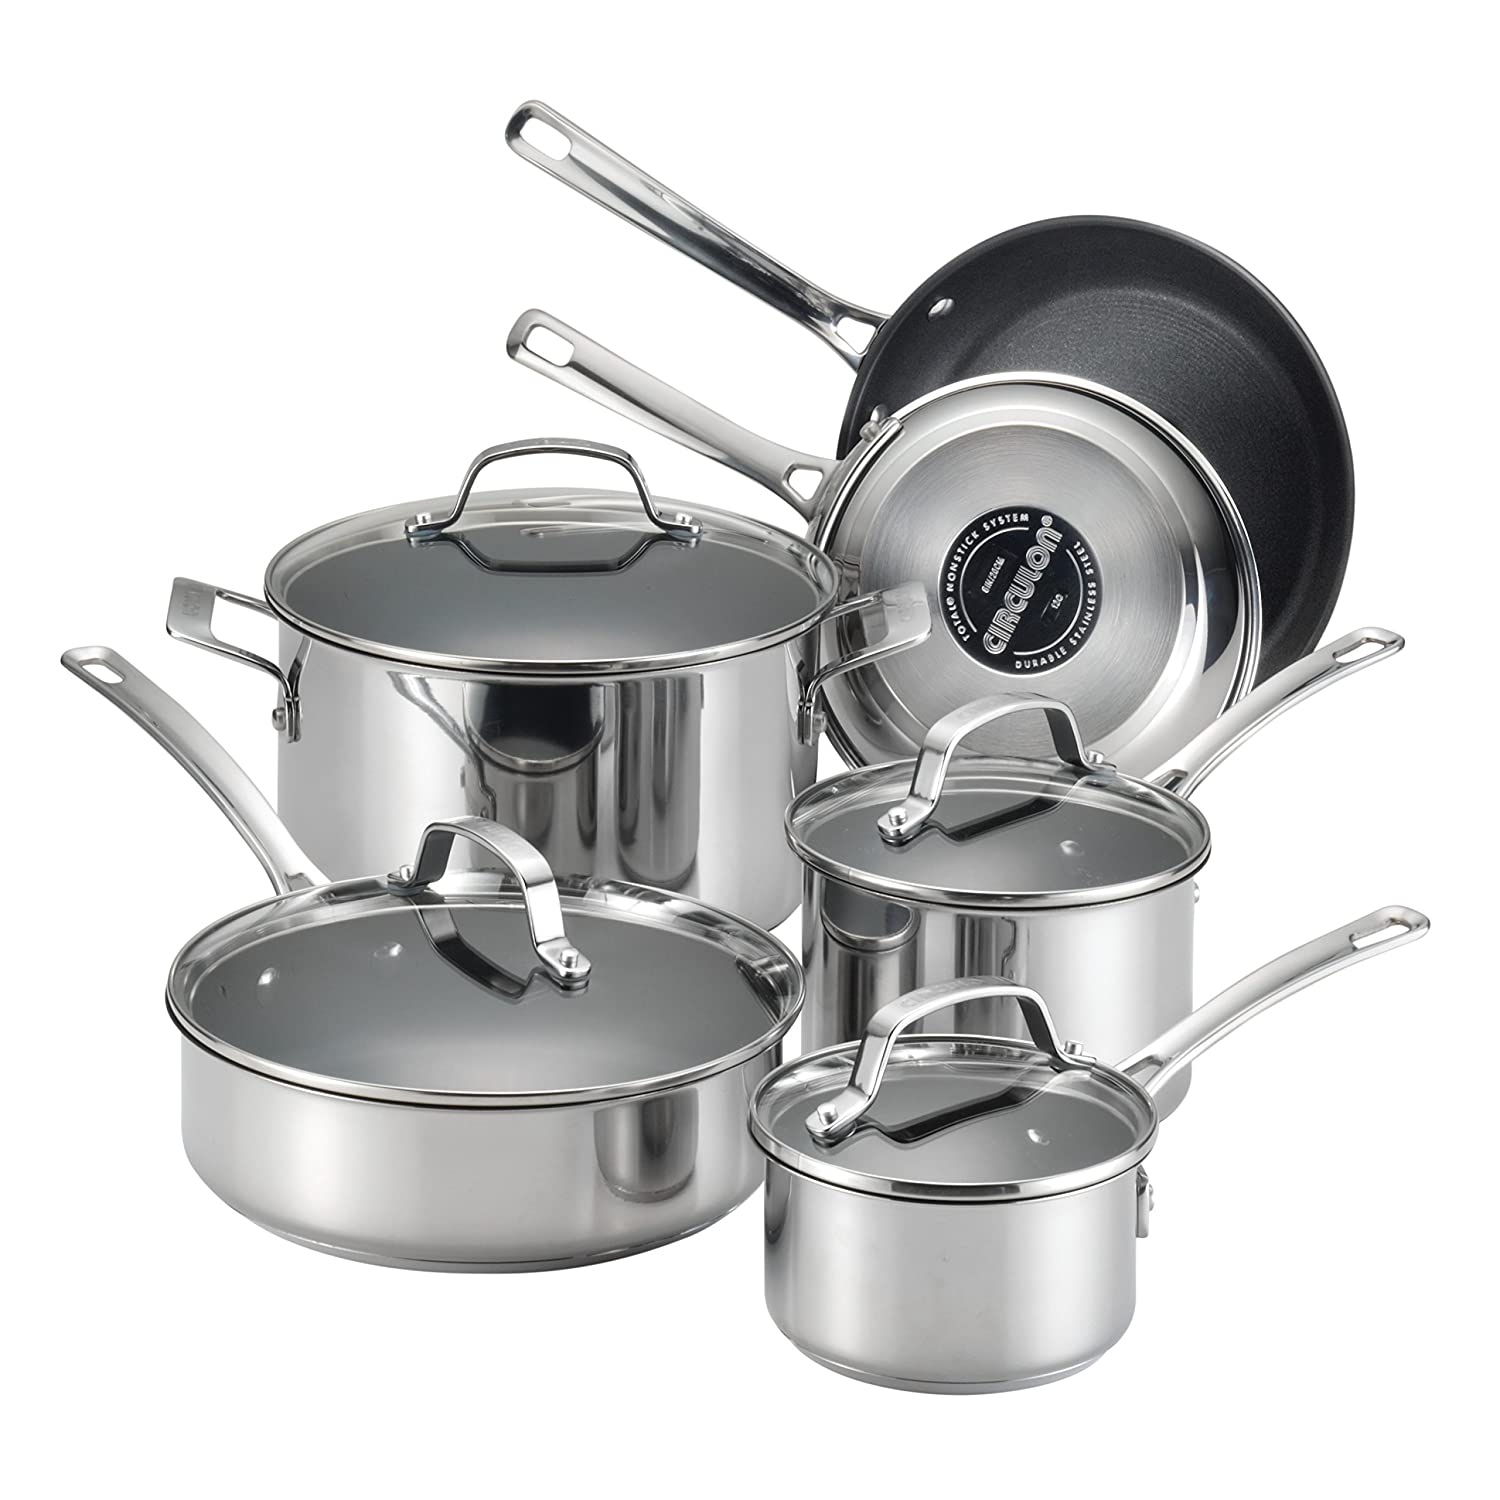 Circulon Genesis Stainless Steel Nonstick 10-Piece Cookware Set Meyer 77881